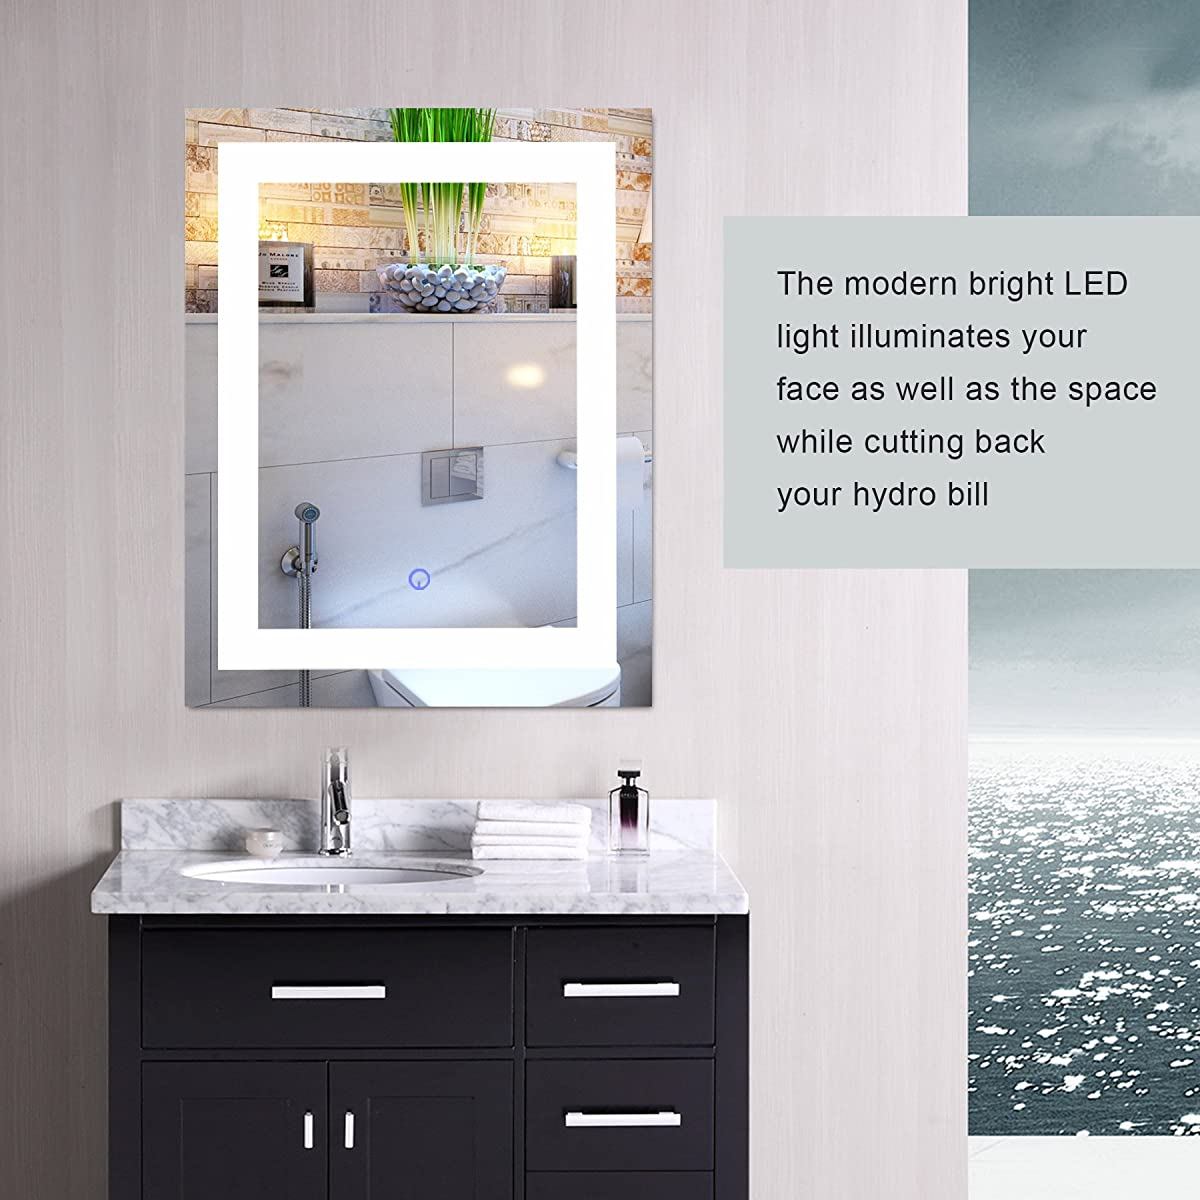 "CO-Z Modern LED Bathroom Mirror, Dimmable Rectangle Lighted Wall Mirror Lights Dimmer, Wall Mounted Contemporary Light Up Makeup Vanity Cosmetic Bathroom Mirror Over Sink (24"" x 30"")"